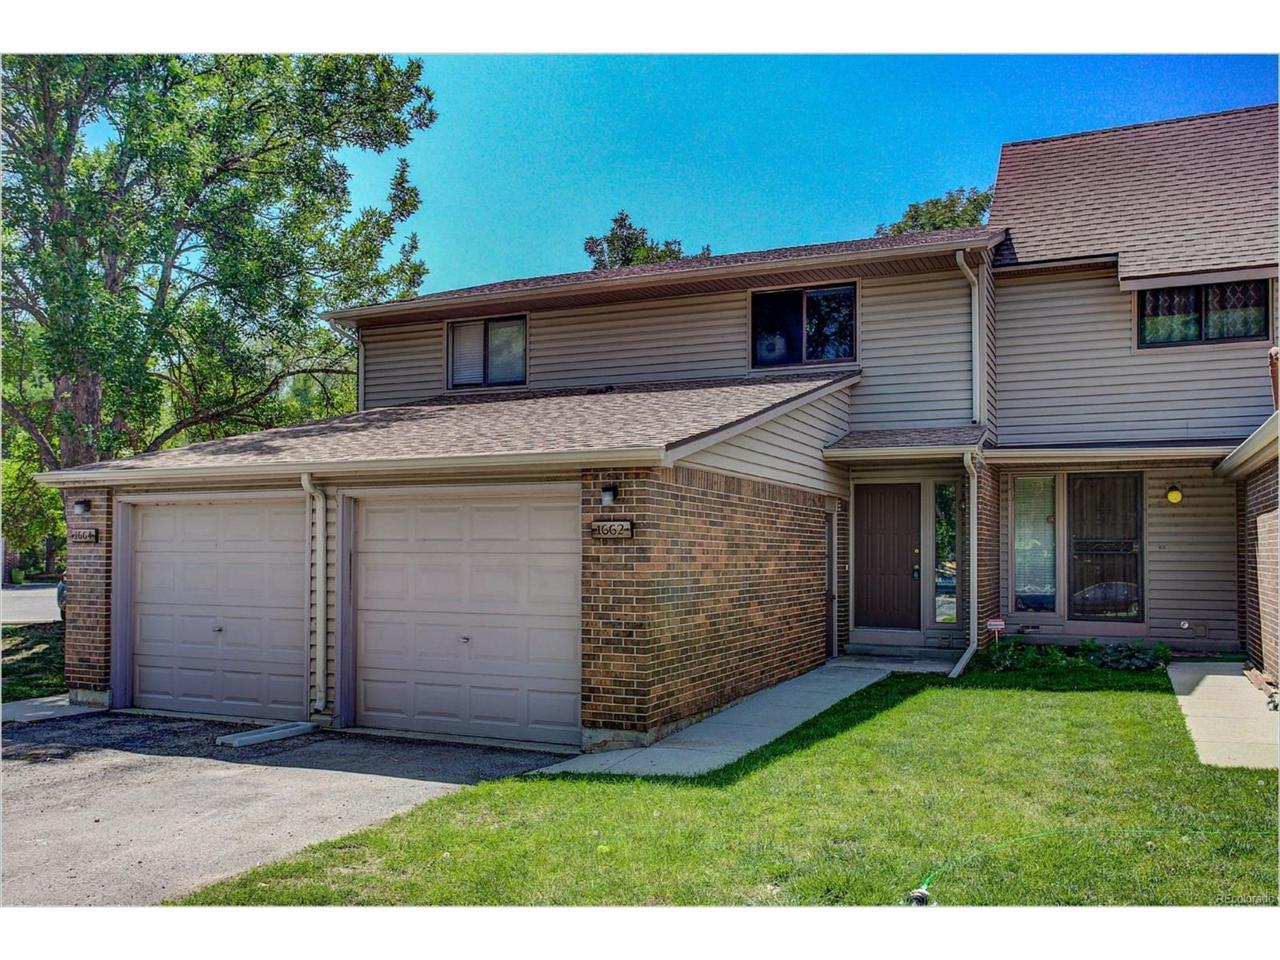 1662 Centaur Circle, Lafayette, CO 80026 (MLS #6488597) :: 8z Real Estate